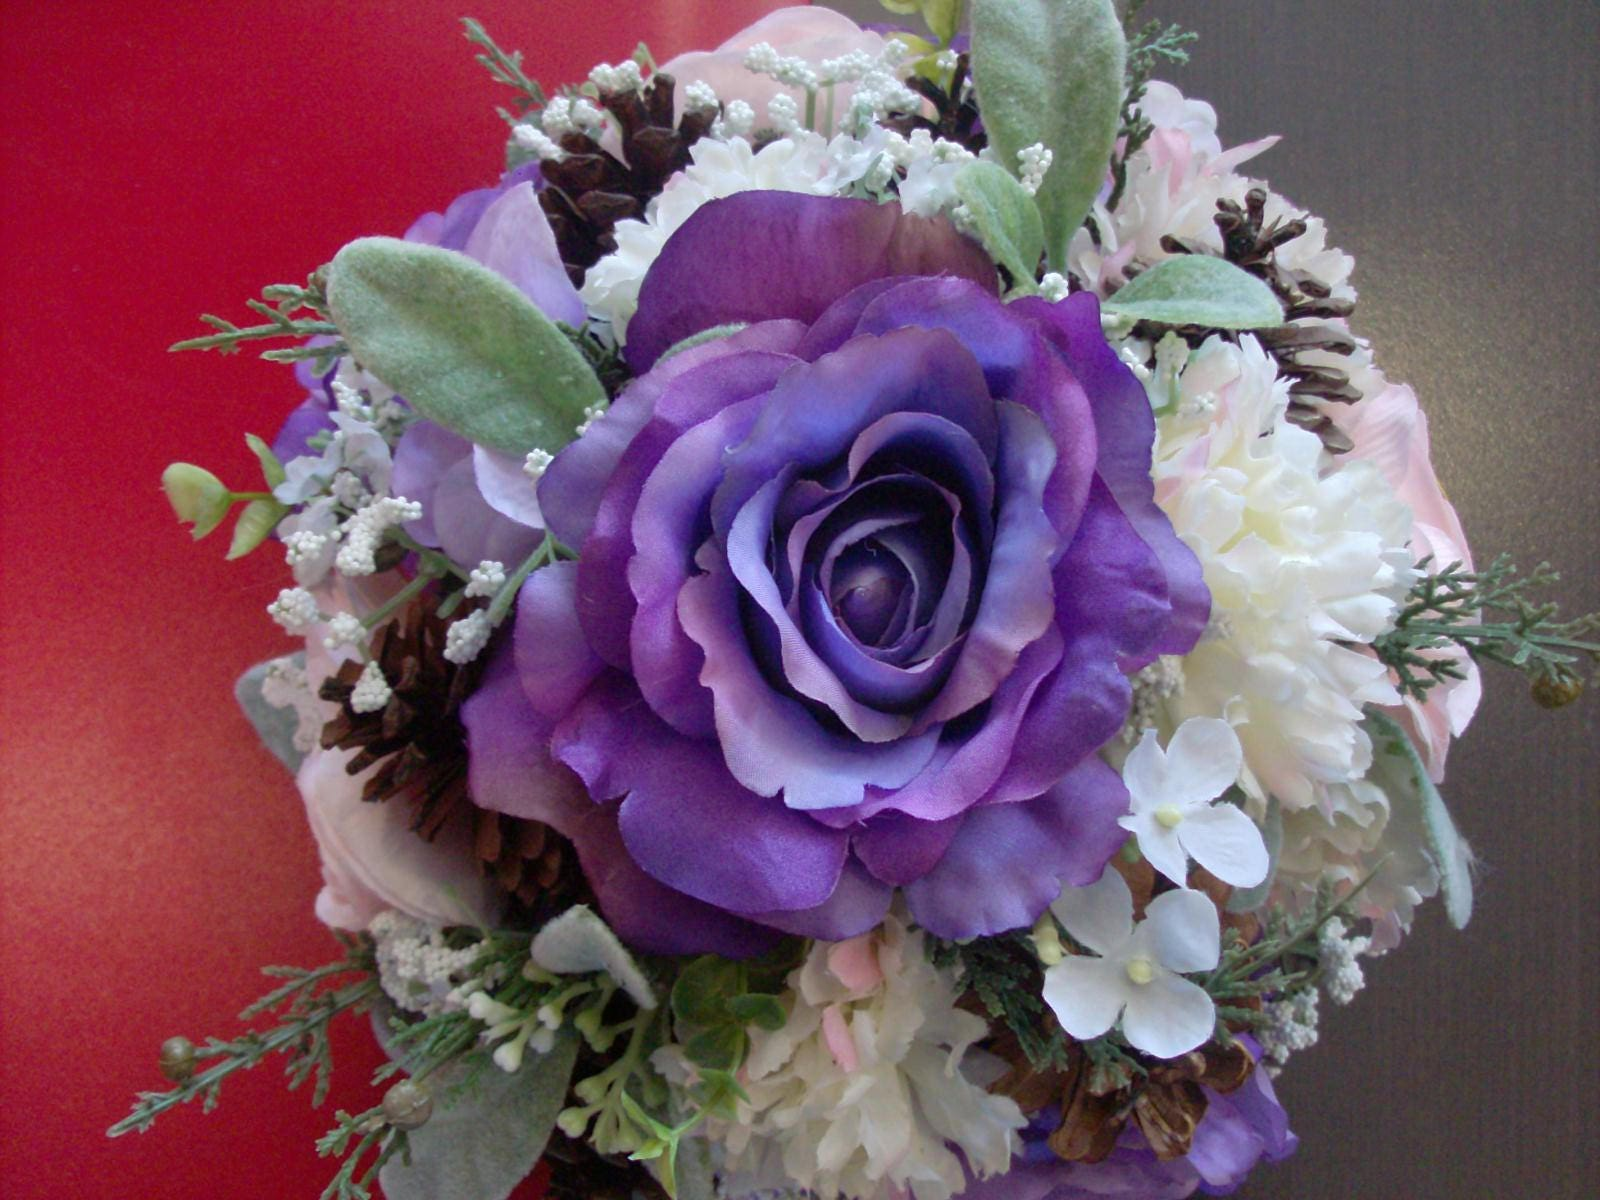 Purple white and blush bridal bouquet purple rose blush ranunculus purple white and blush bridal bouquet purple rose blush ranunculus lambs ear in silver green white babies breath free groom boutonniere izmirmasajfo